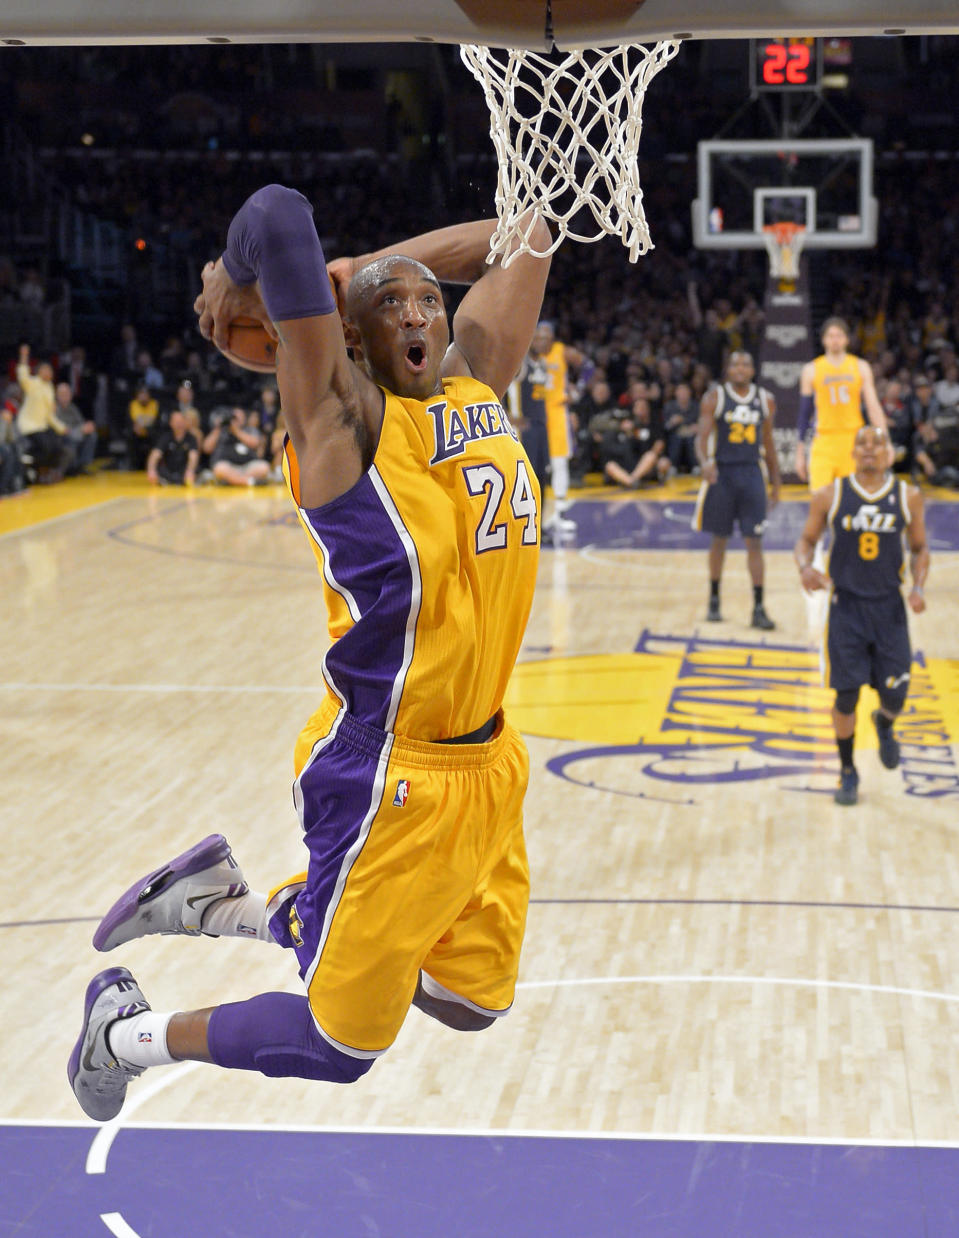 FILE - Los Angeles Lakers guard Kobe Bryant goes up for a dunk during the first half of an NBA basketball game against the Utah Jazz in Los Angeles, in this Friday, Jan. 25, 2013, file photo. Kobe Bryant, Tim Duncan and Kevin Garnett. Each was an NBA champion, an MVP, an Olympic gold medalist, annual locks for All-Star and All-Defensive teams. And now, the ultimate honor comes their way: On Saturday night, May 15, 2021, in Uncasville, Connecticut, they all officially become members of the Naismith Memorial Basketball Hall of Fame. (AP Photo/Mark J. Terrill, File)